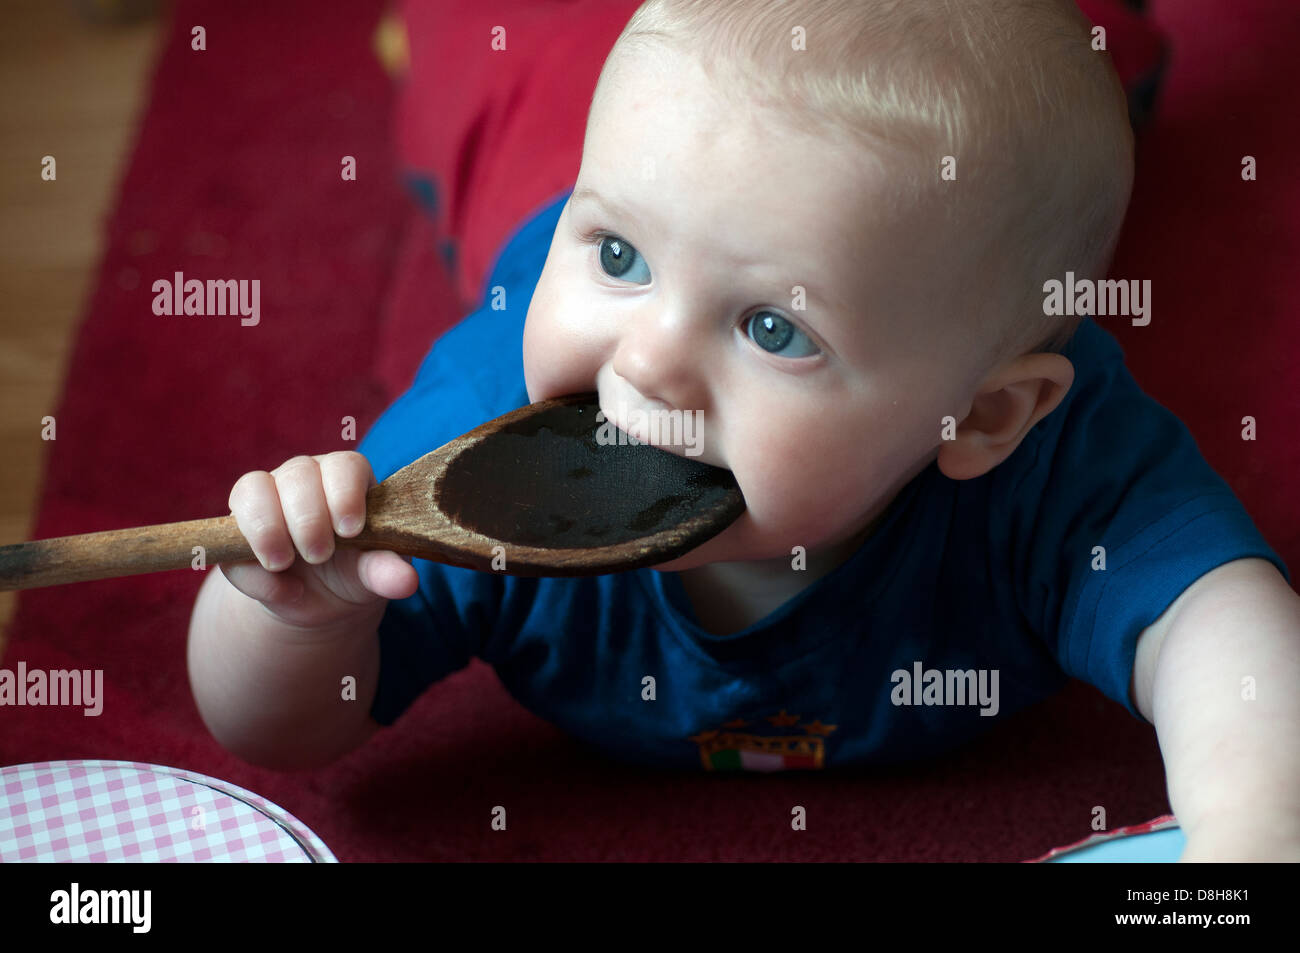 baby teething on yummy spoon,wooden spoon,fang, denticulation tusk denticle dentition - Stock Image